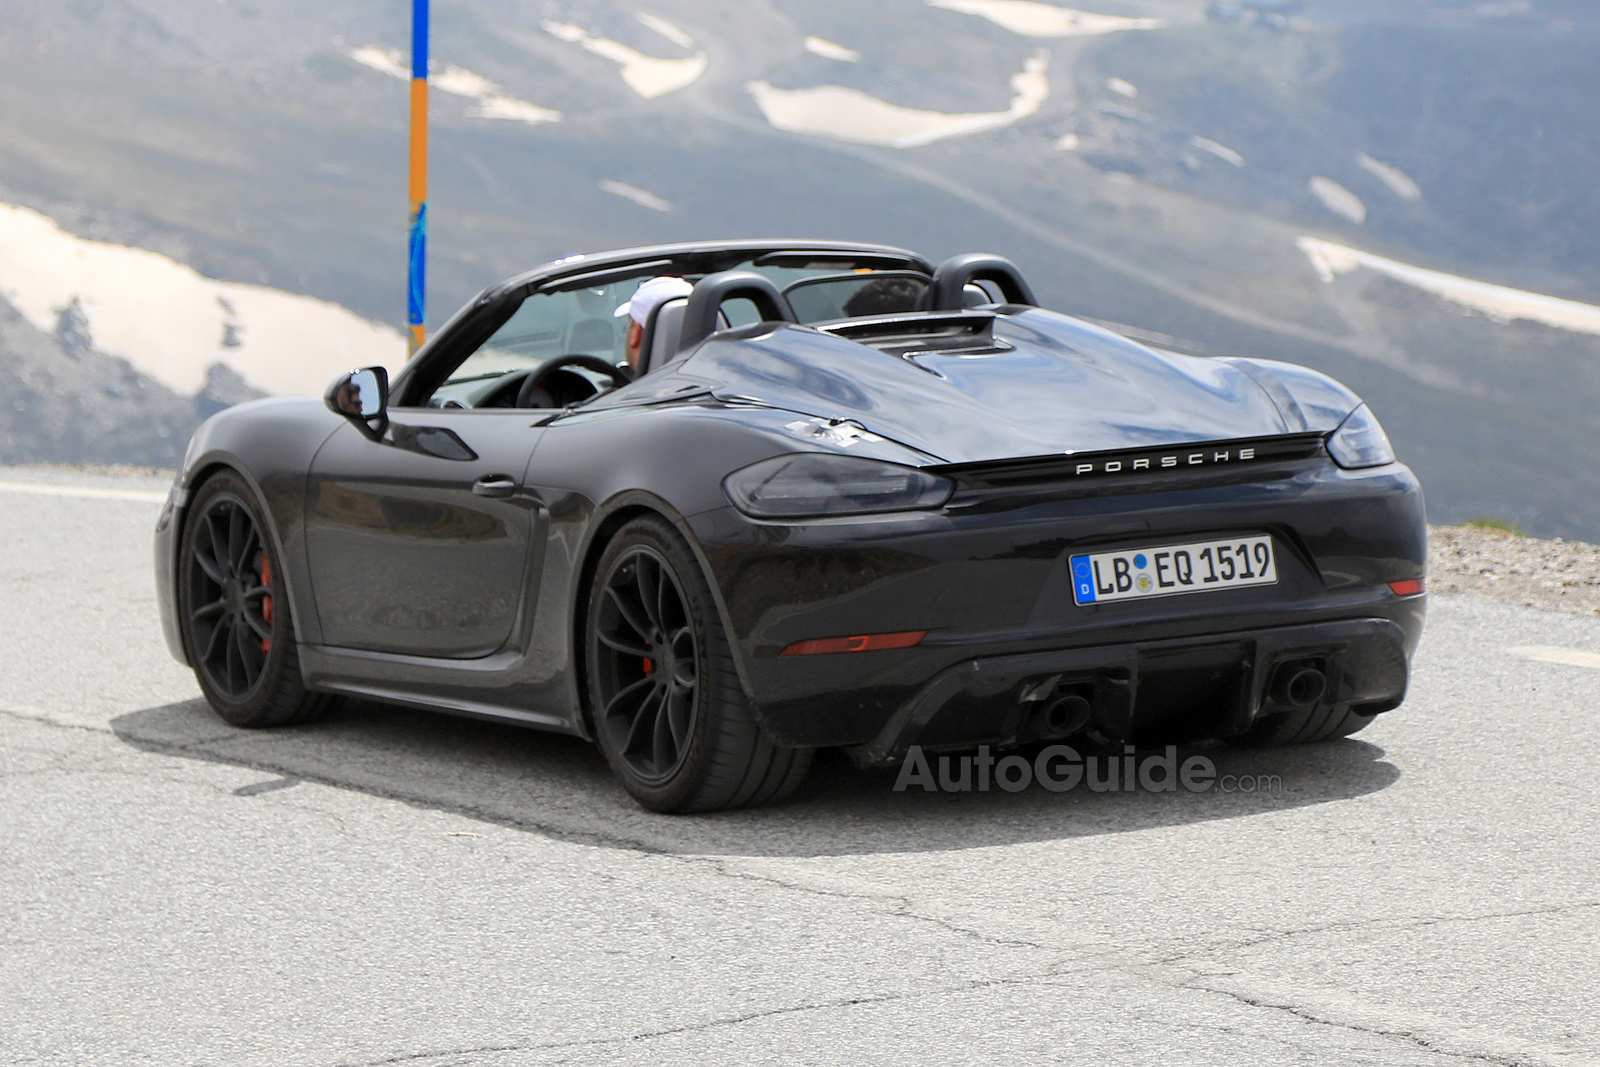 74 The 2019 Porsche Boxster Spyder Spy Shoot with 2019 Porsche Boxster Spyder